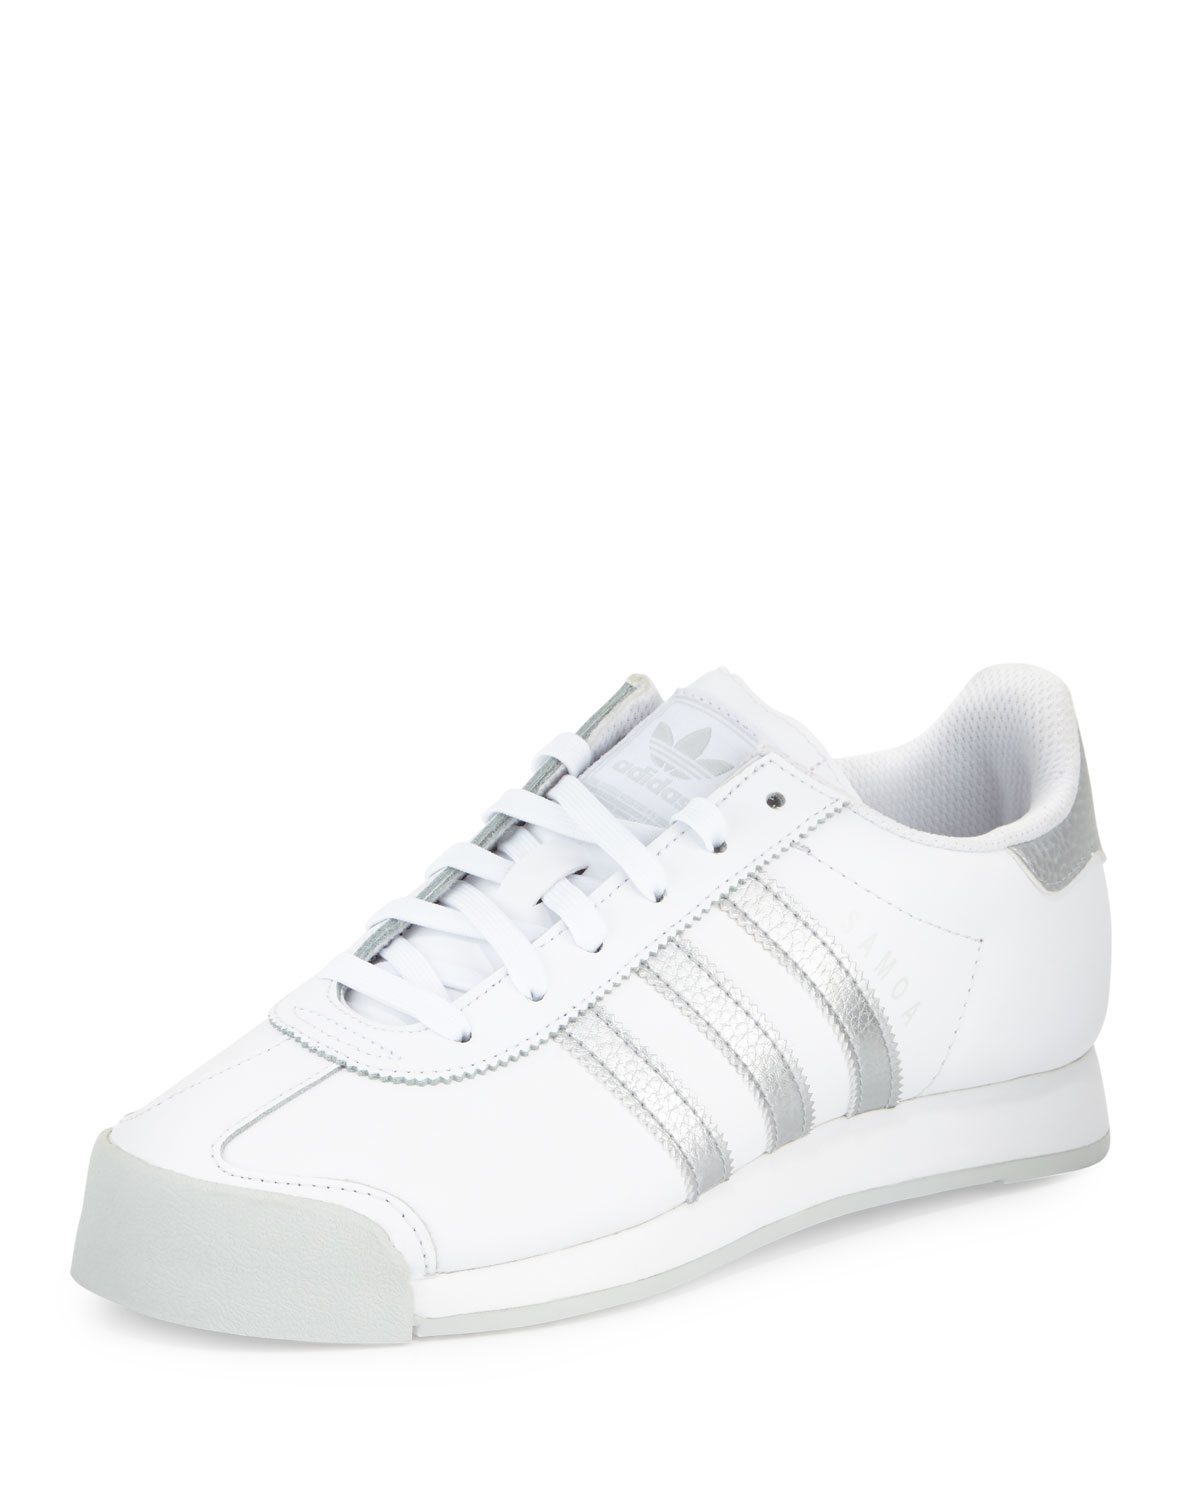 ebc434f0254731 Adidas Samoa Original Leather Sneaker